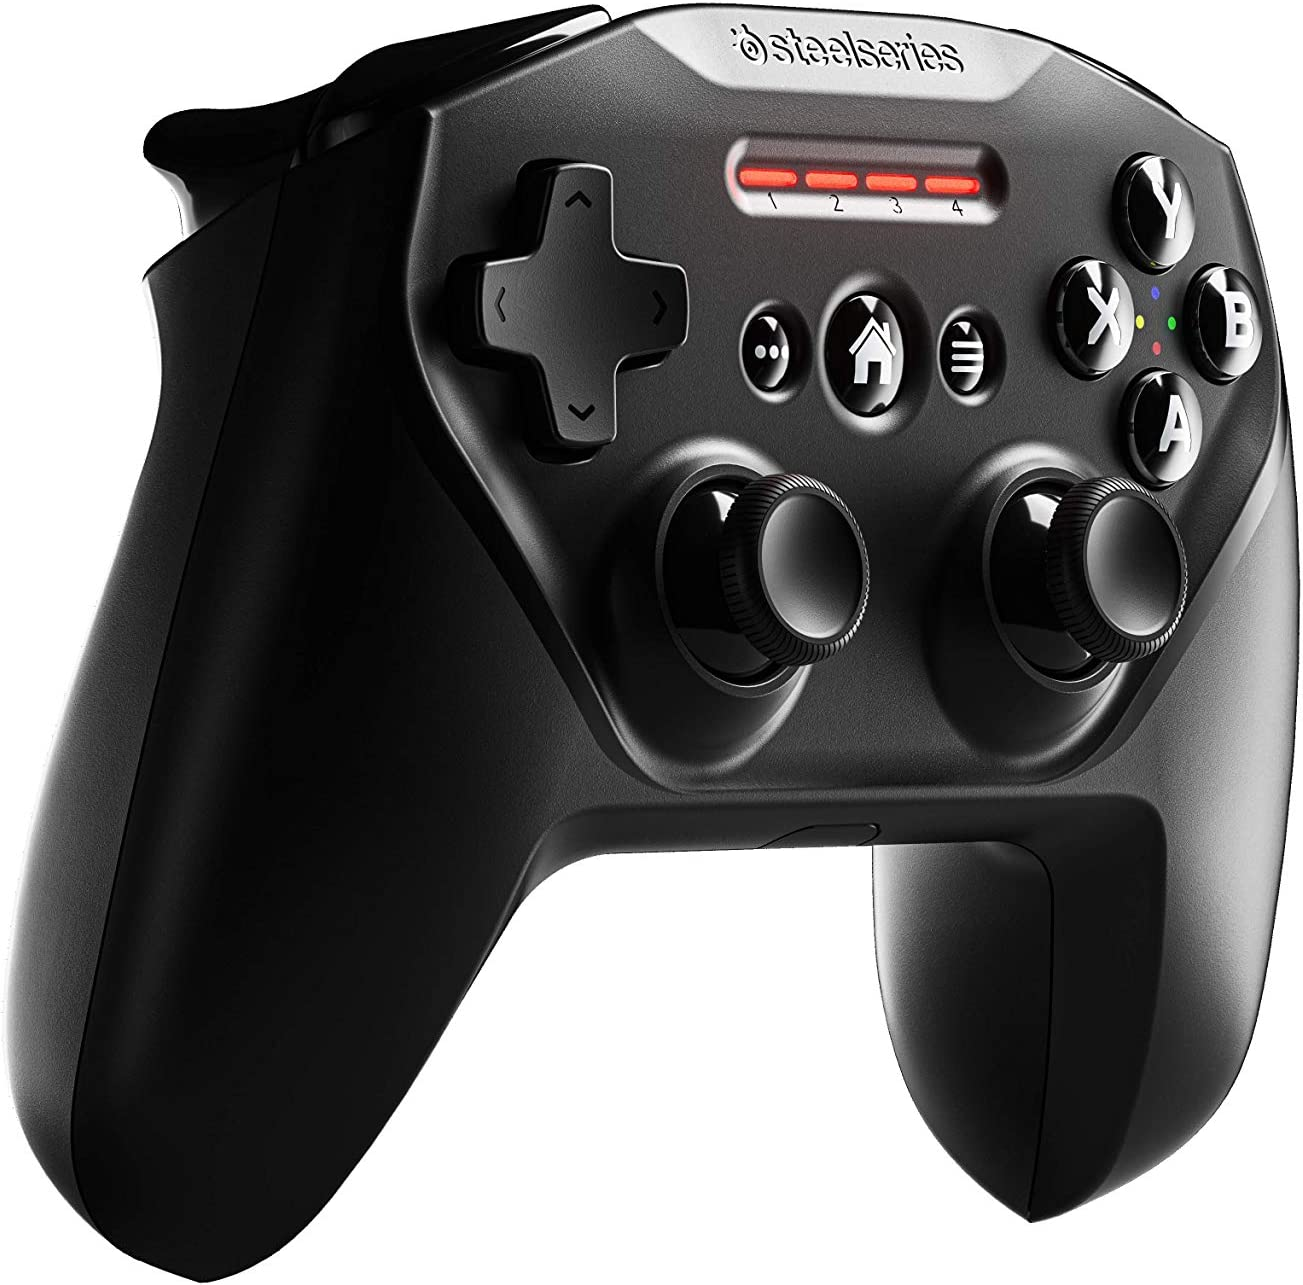 SteelSeries Nimbus+ Bluetooth Mobile Gaming Controller with iPhone Mount + Up to 4 Free Months of Apple Arcade, 50+ Hour Battery Life, Apple Licensed, Made for iOS, iPadOS, tvOS